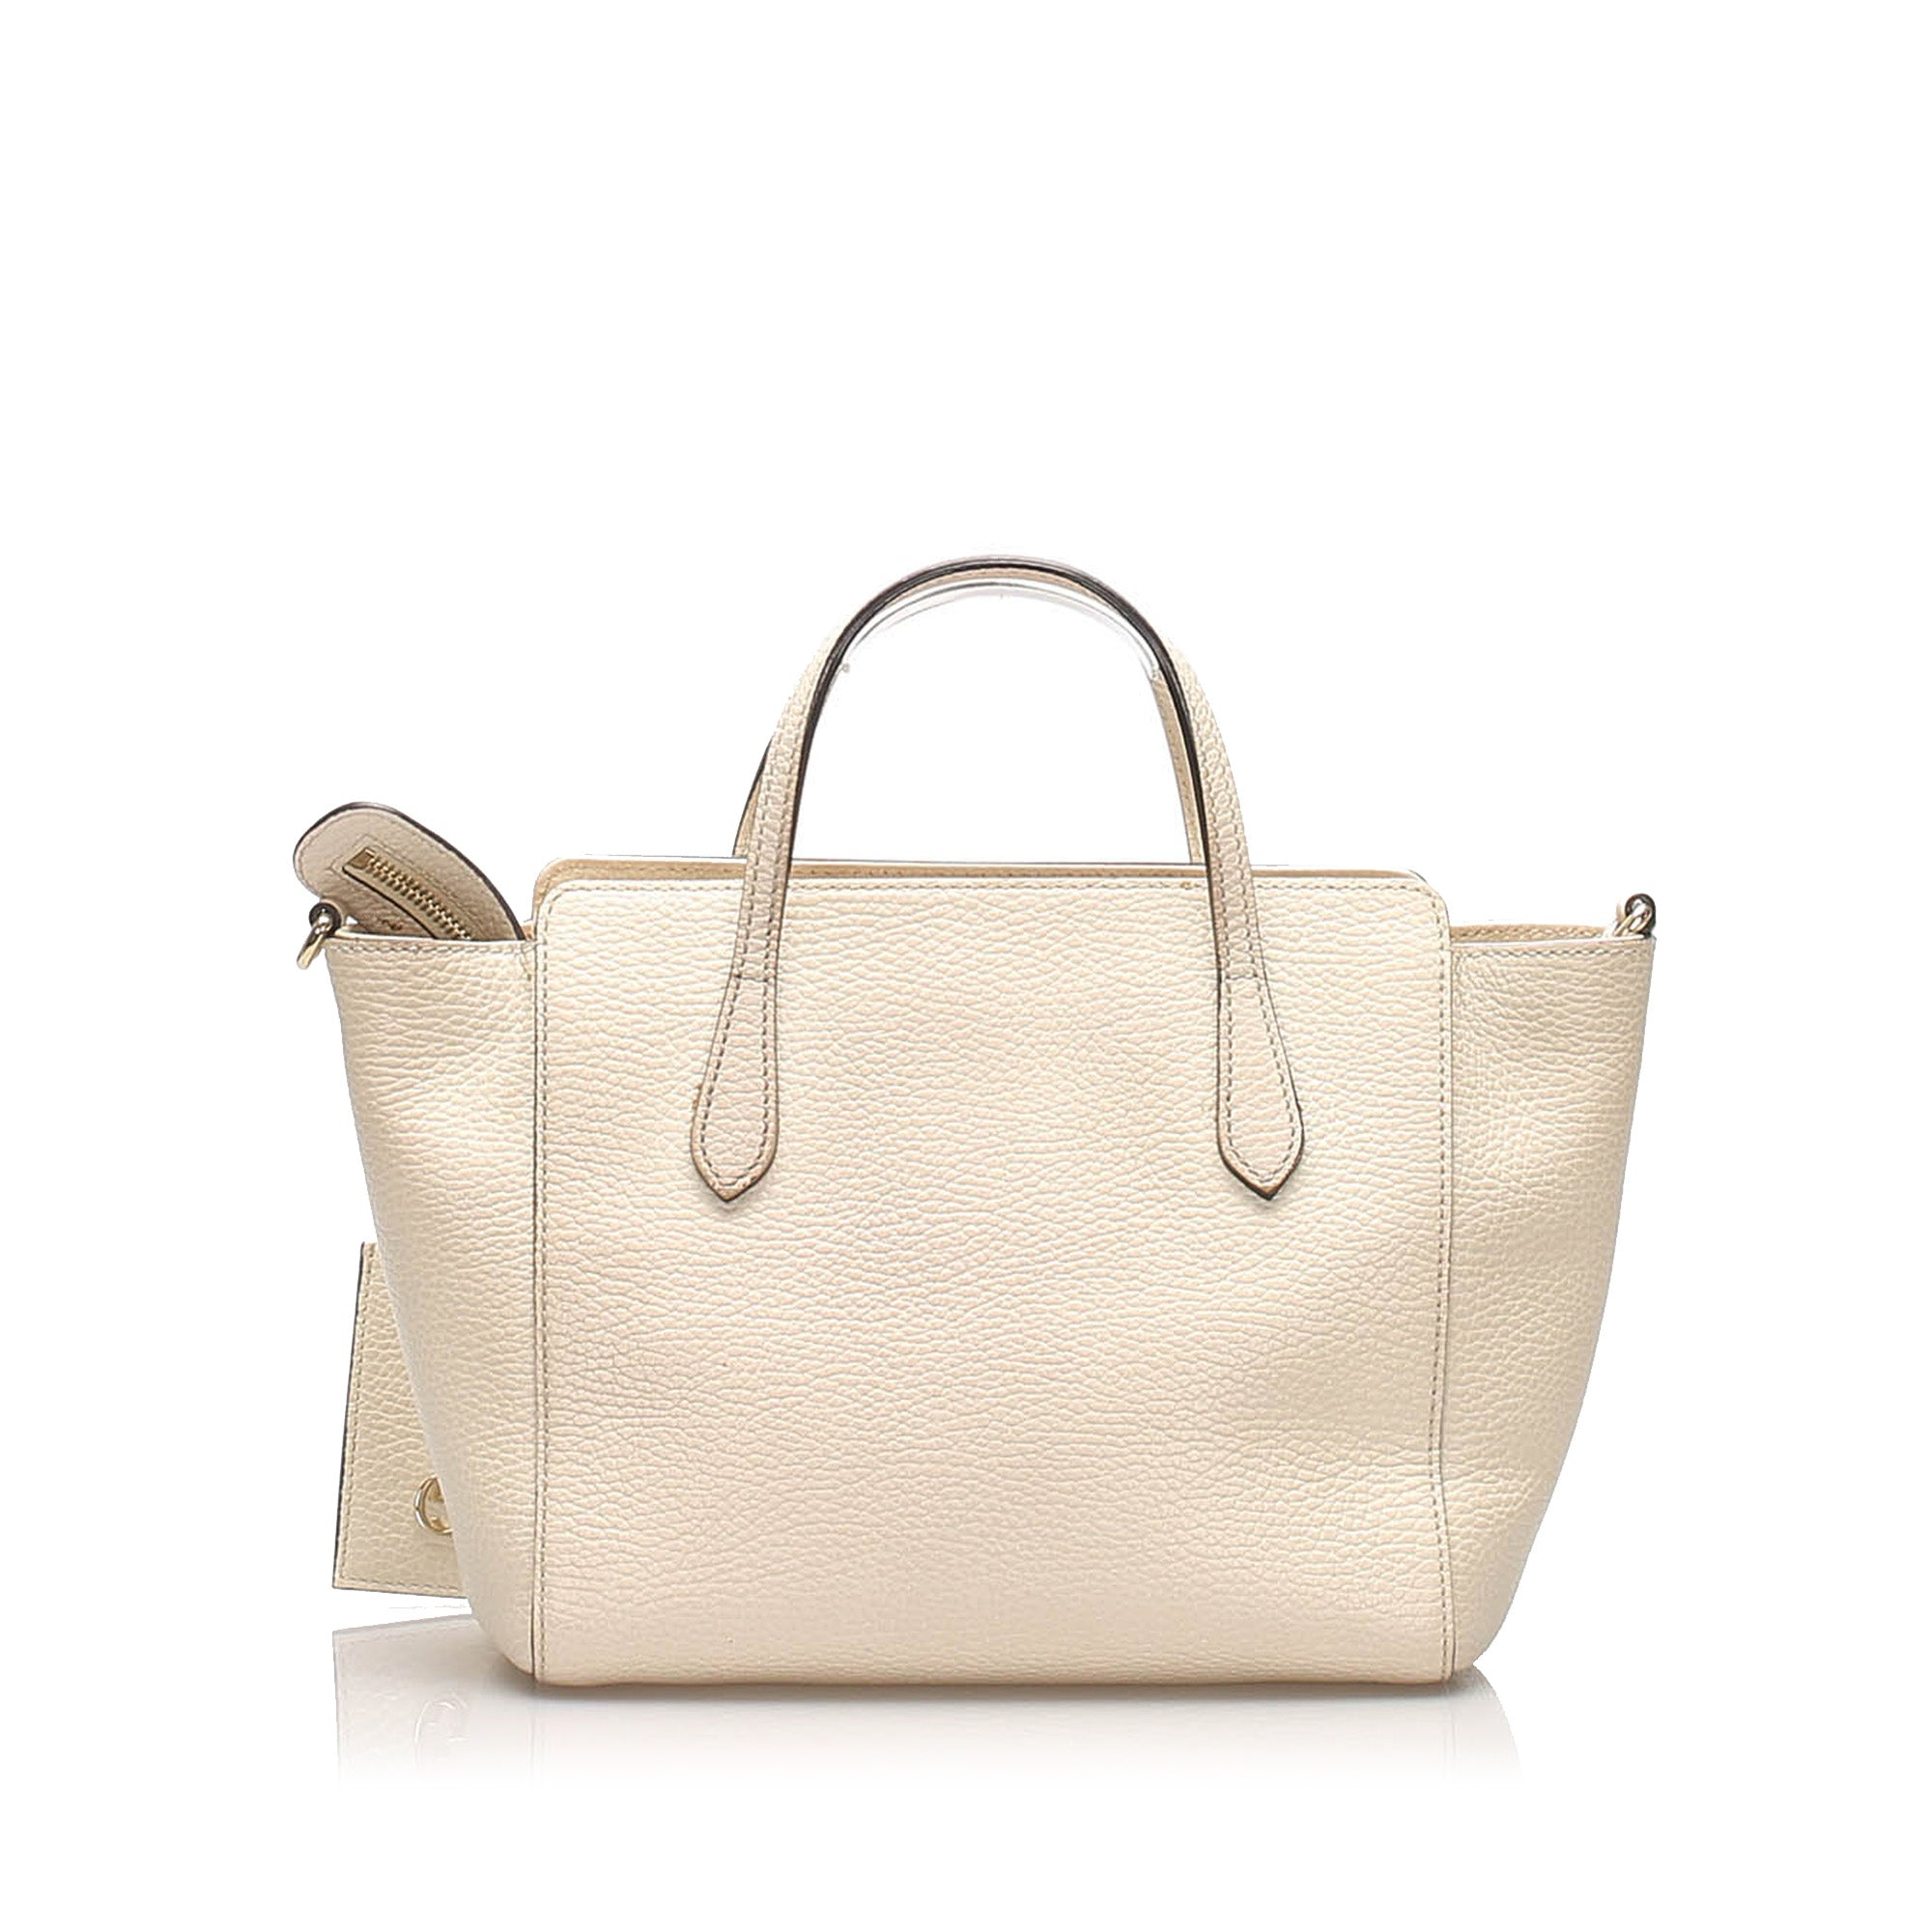 Gucci White Swing Leather Satchel